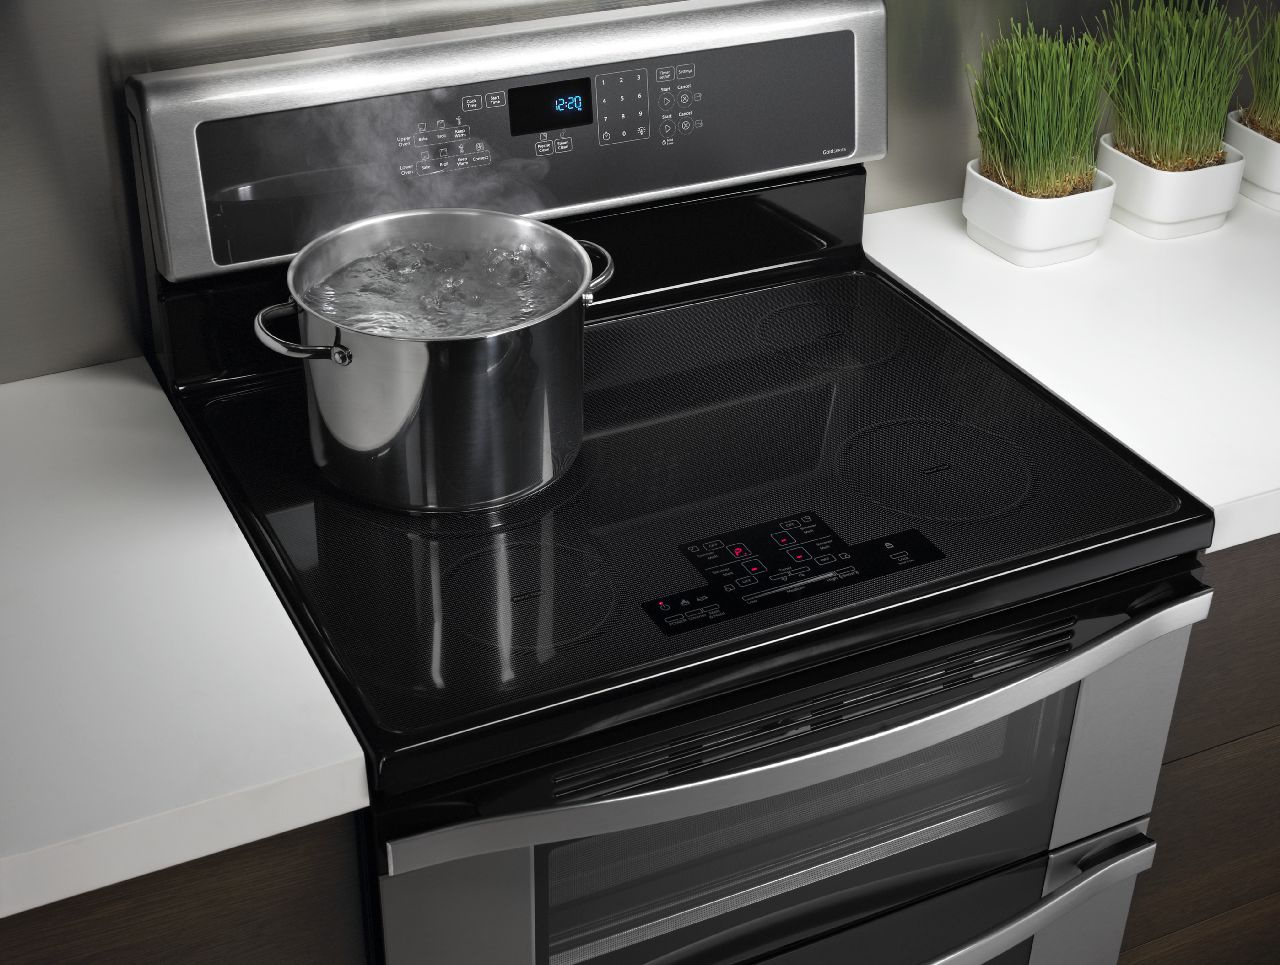 Whirlpool Induction Double Oven Freestanding Range WGI925C0BS A Concord Car